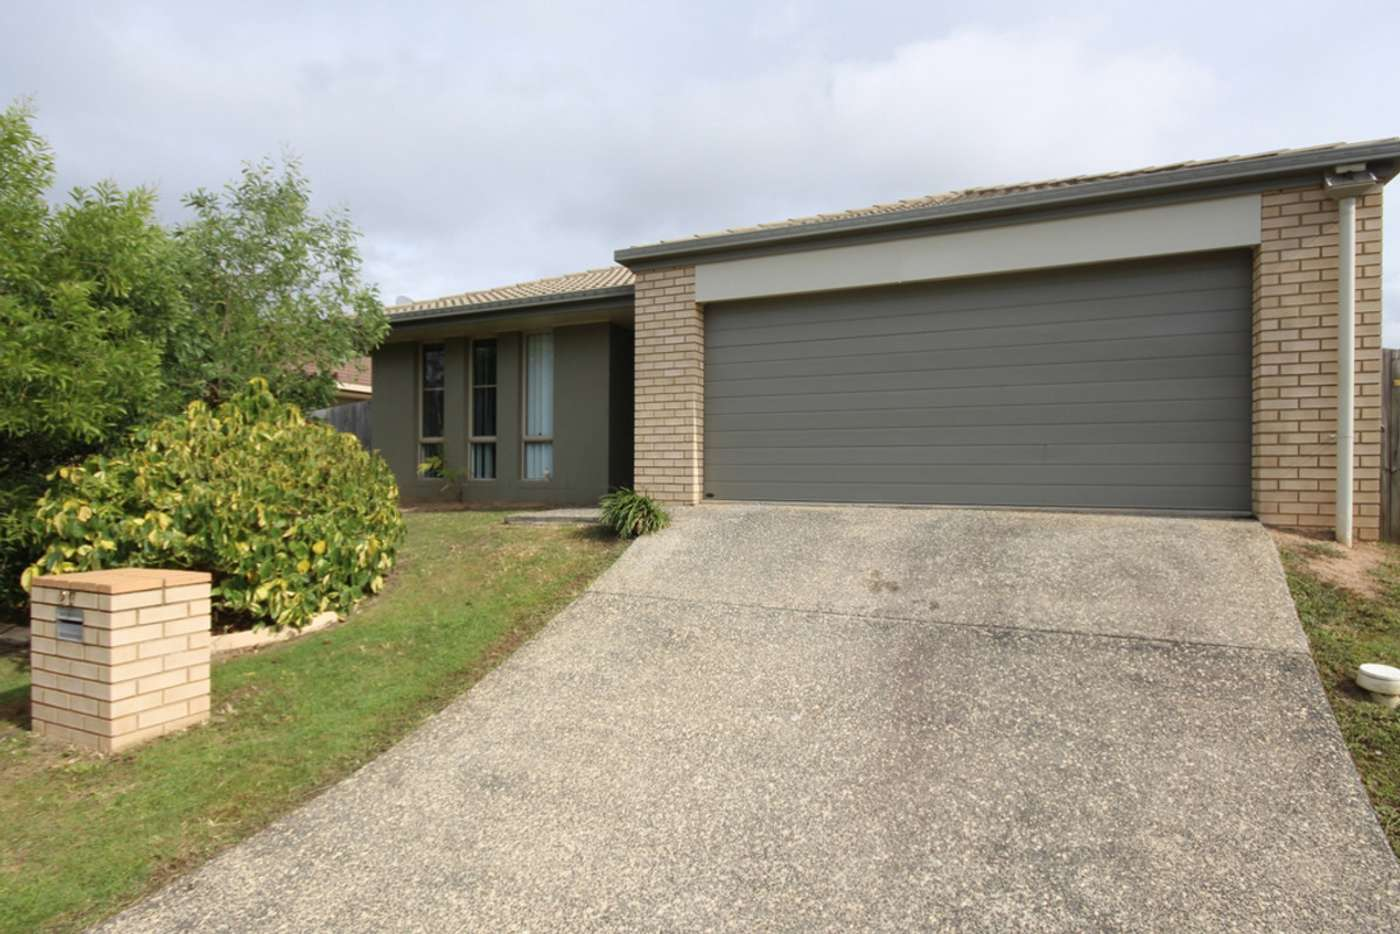 Main view of Homely house listing, 27 Aspinall Street, Leichhardt QLD 4305